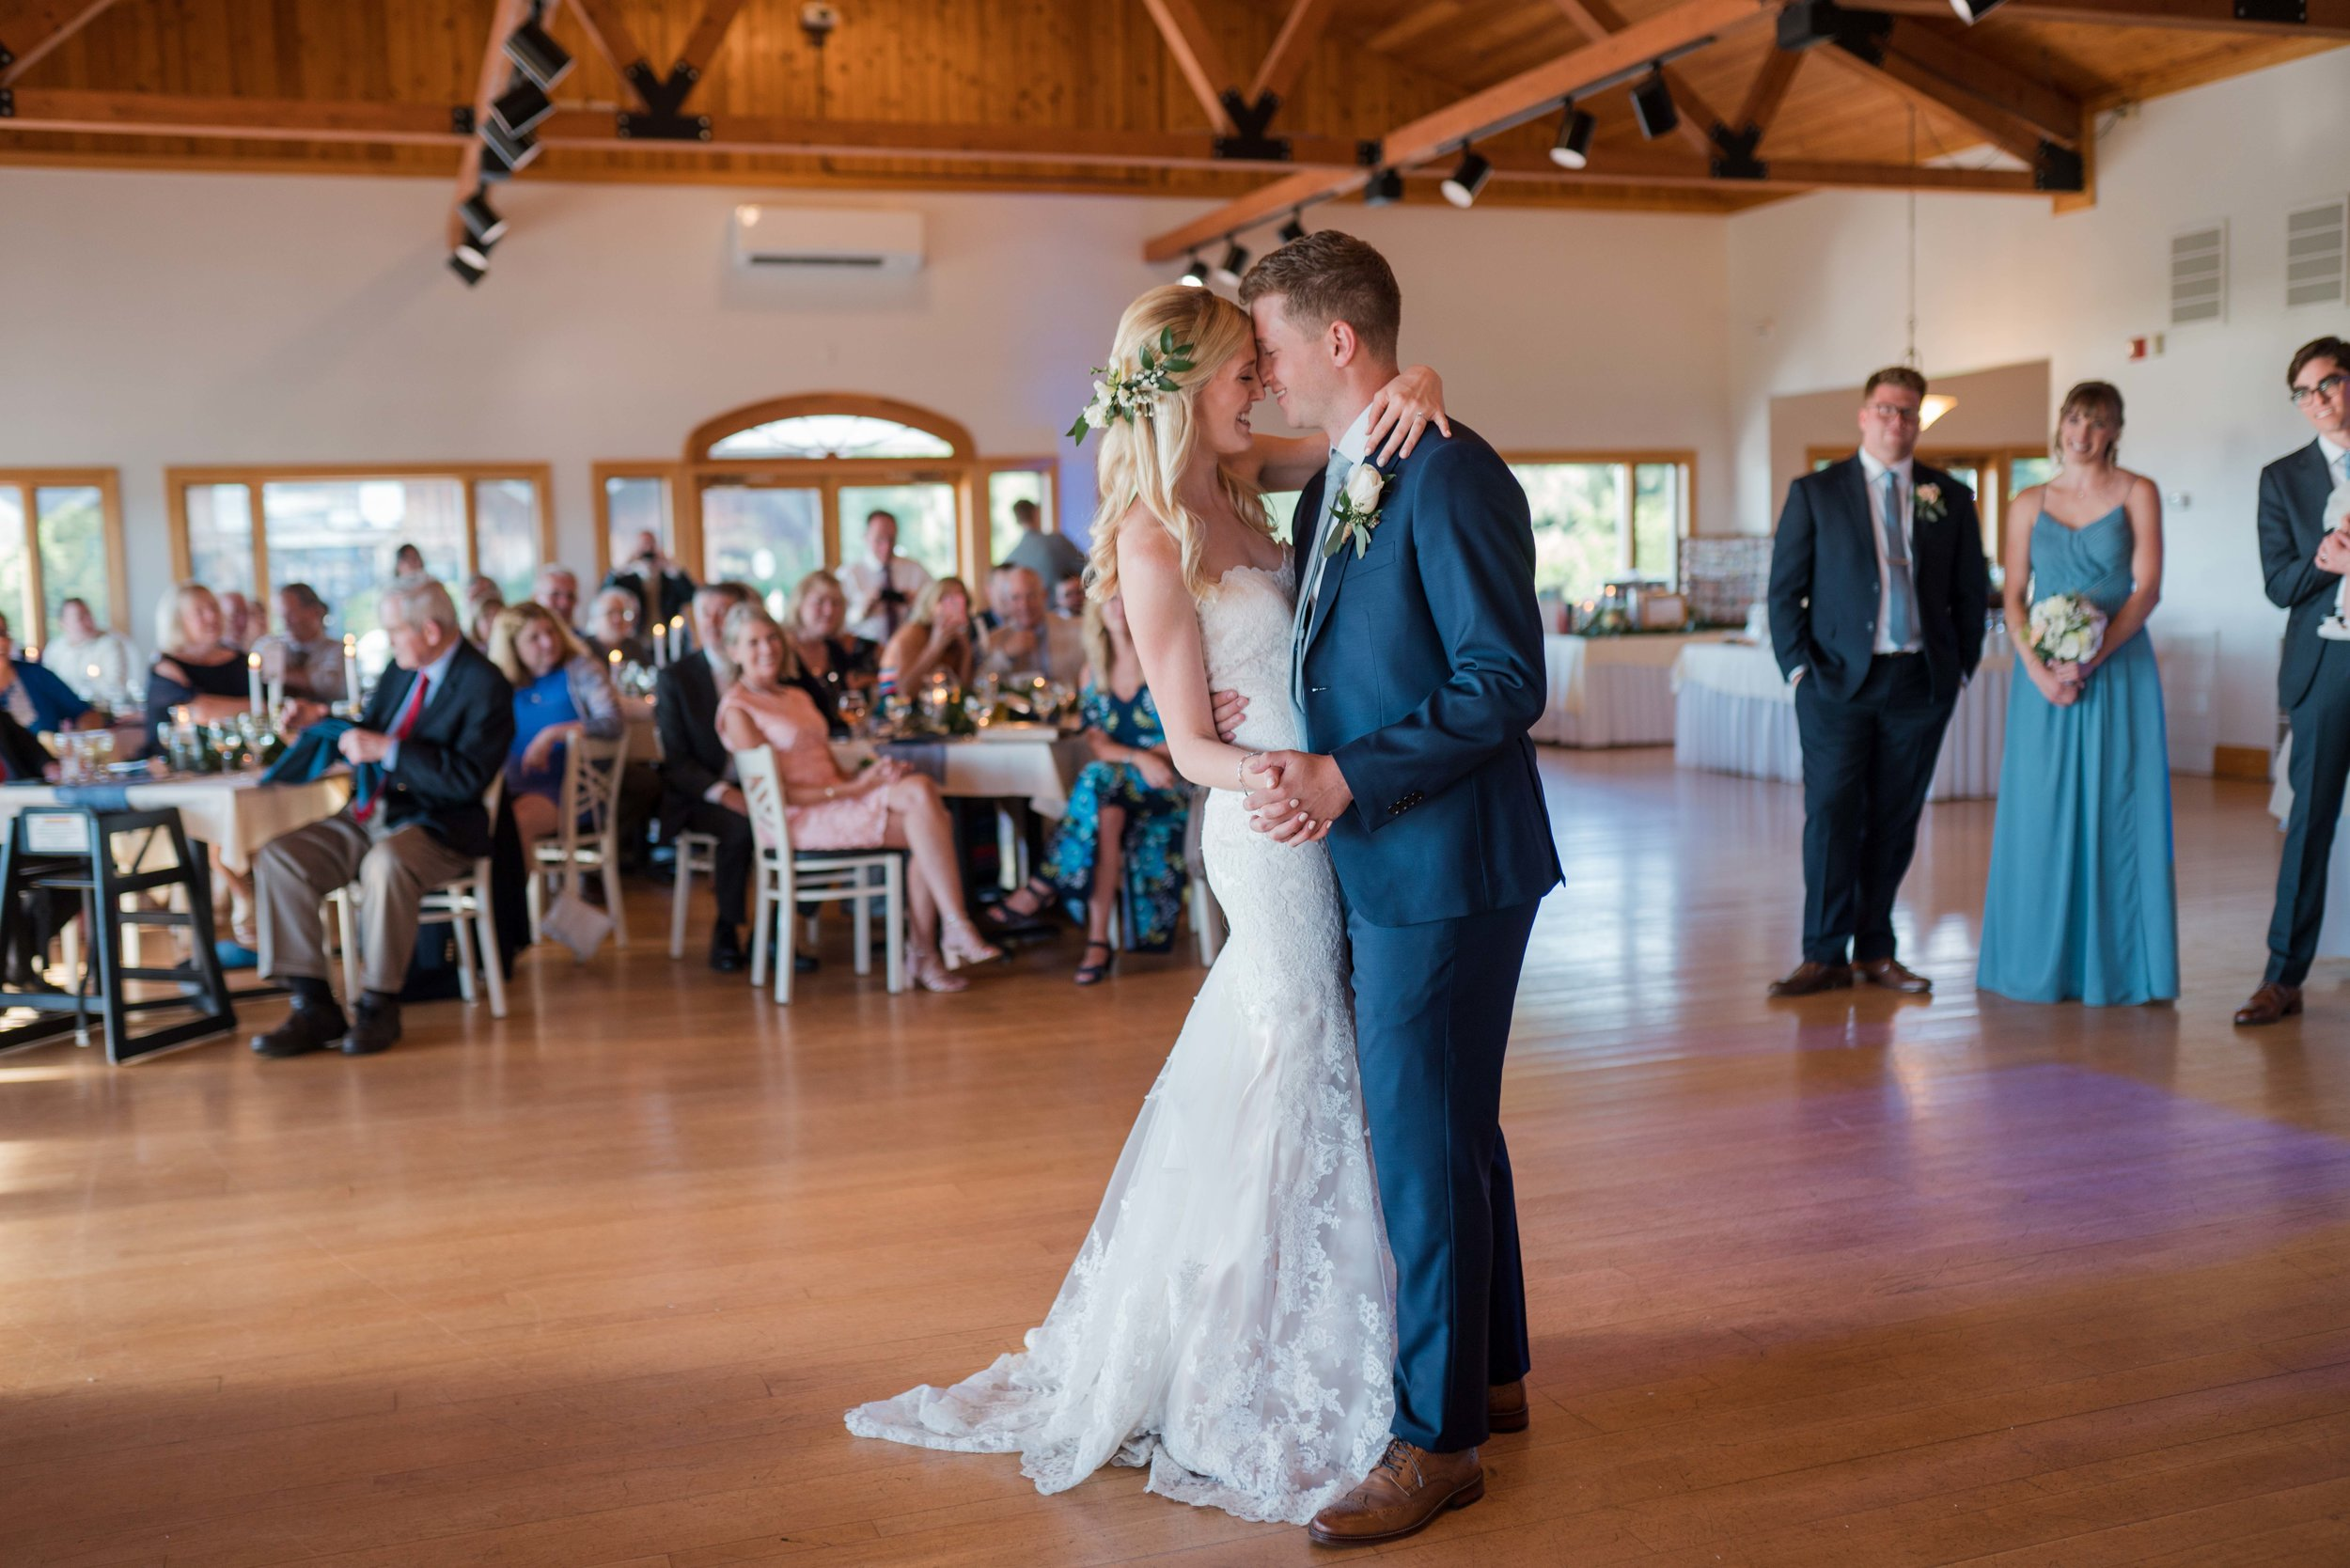 Wedding Photography at Wagner Vineyards Ginny Lee Cafe Finger Lakes by Stefan Ludwig Photography-76.jpg